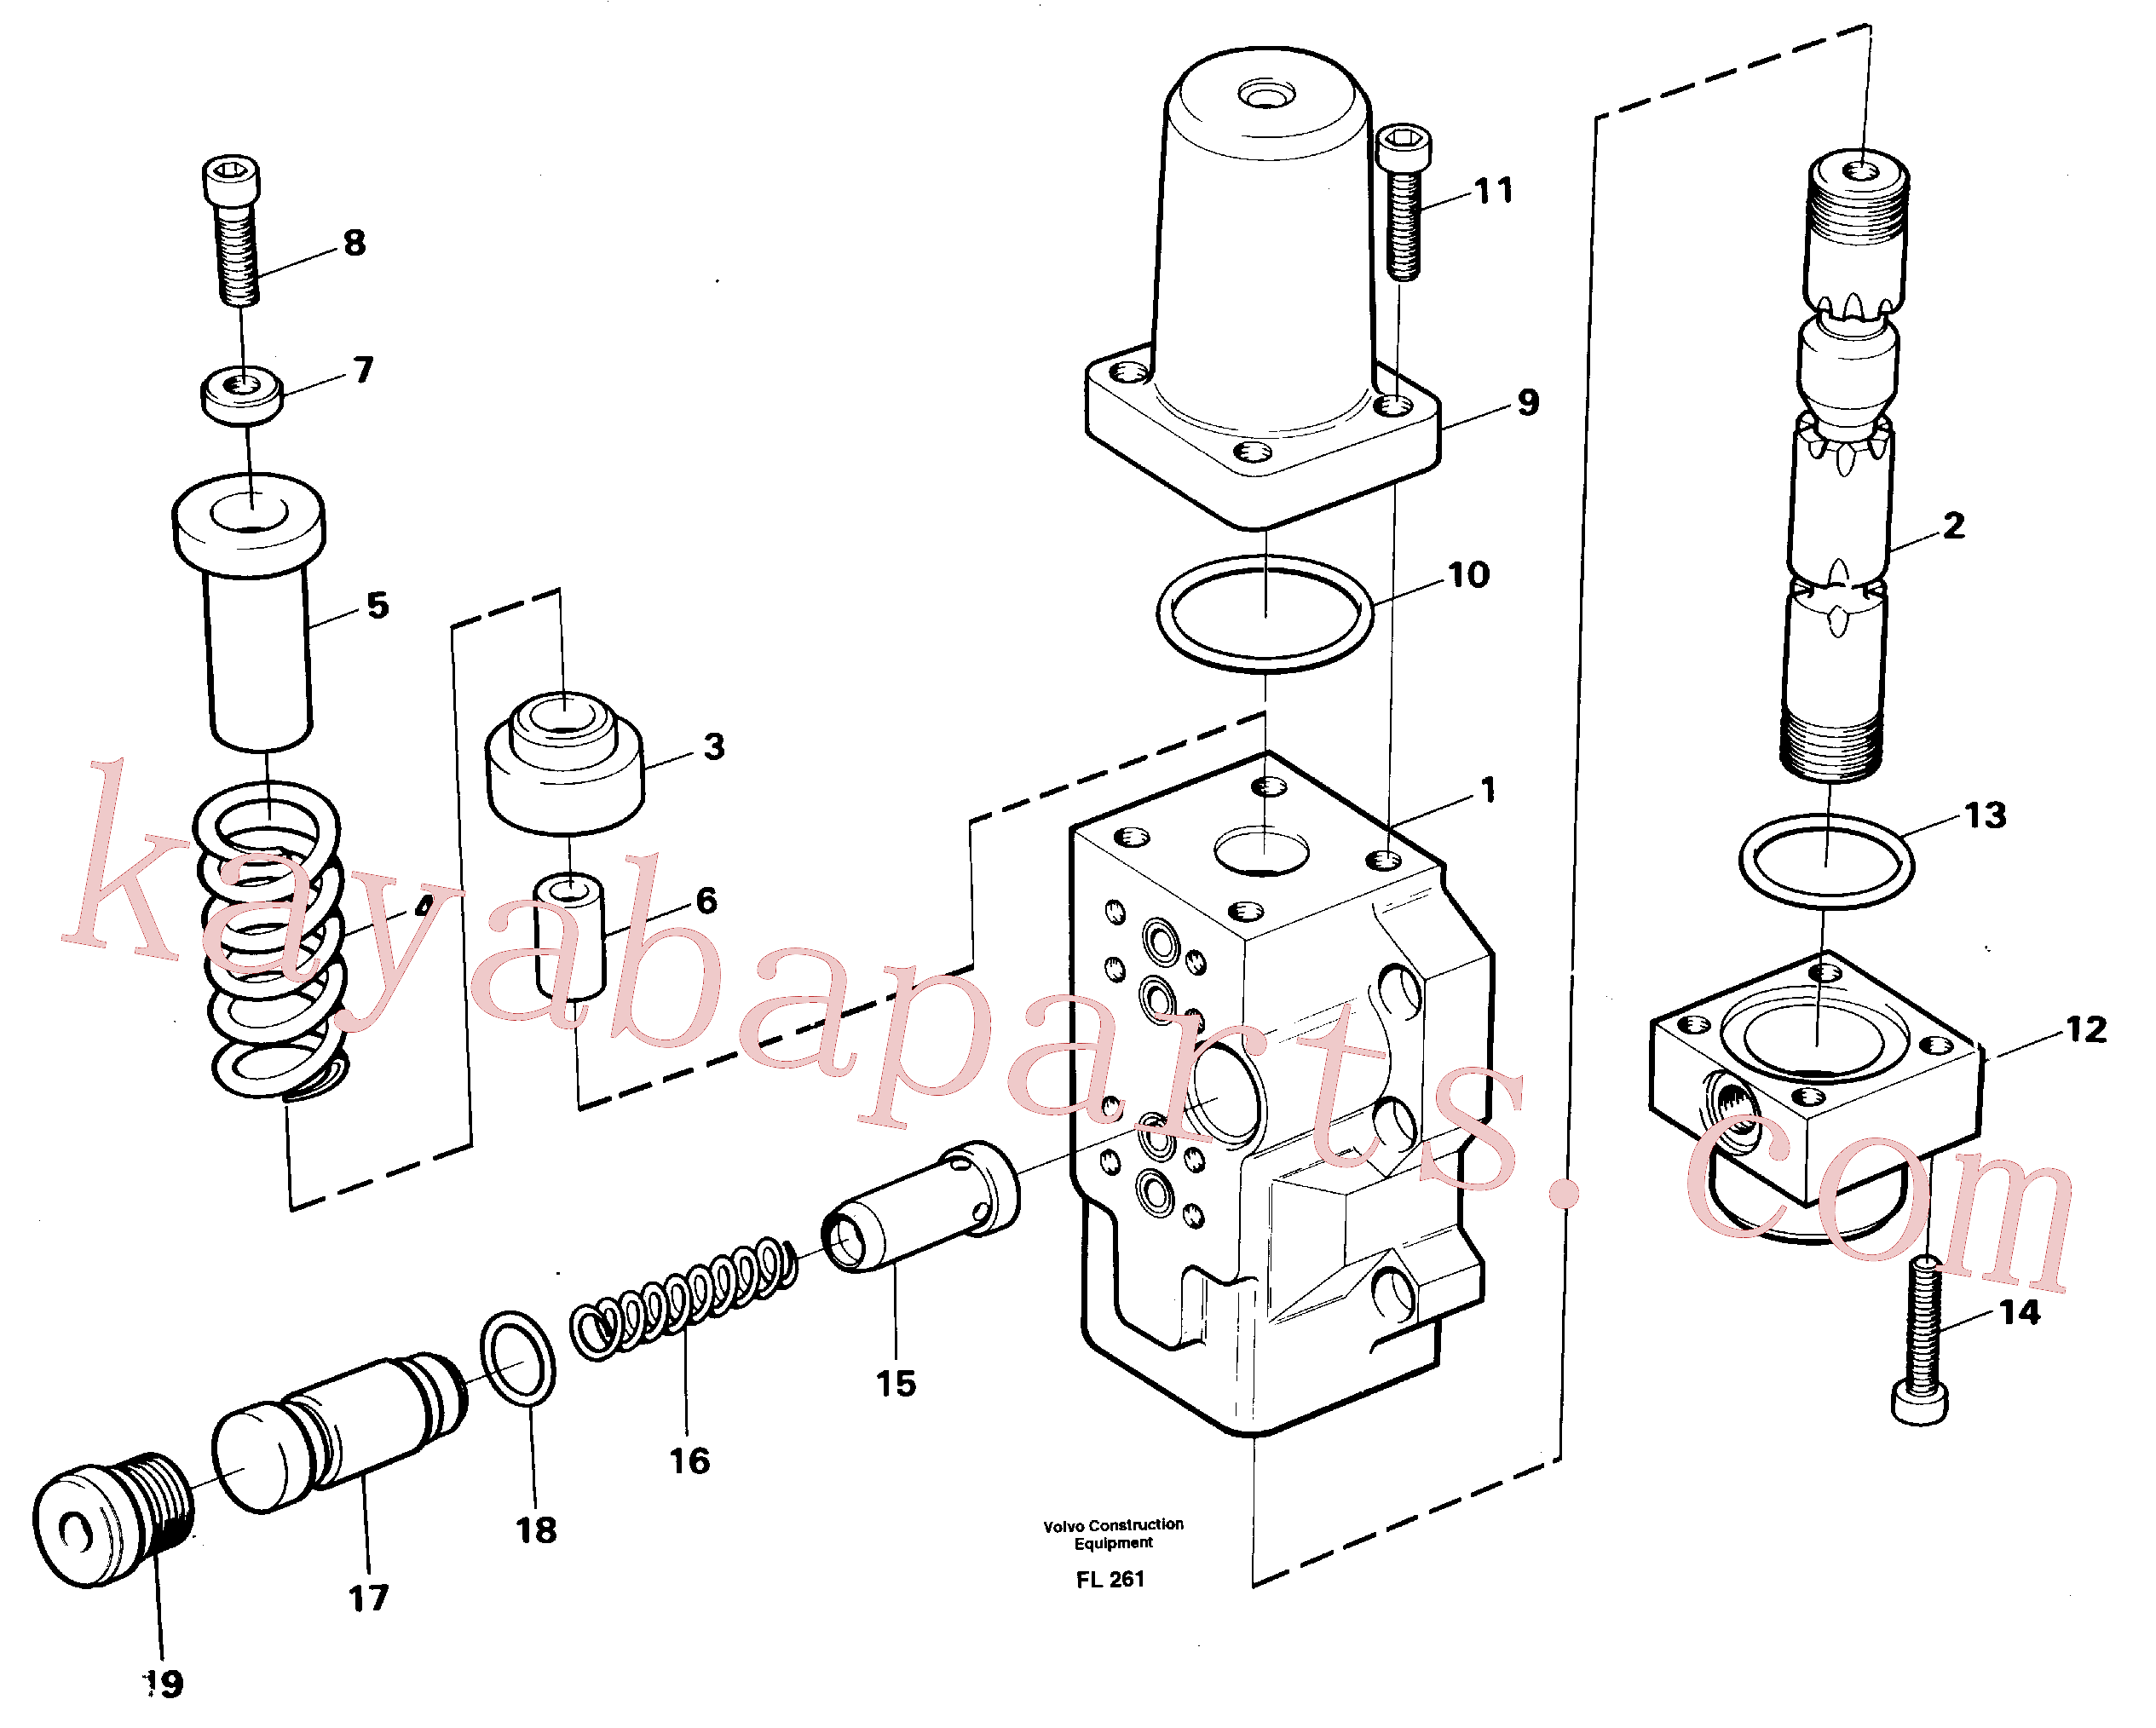 VOE959263 for Volvo Four-way valve, boom primary(FL261 assembly)